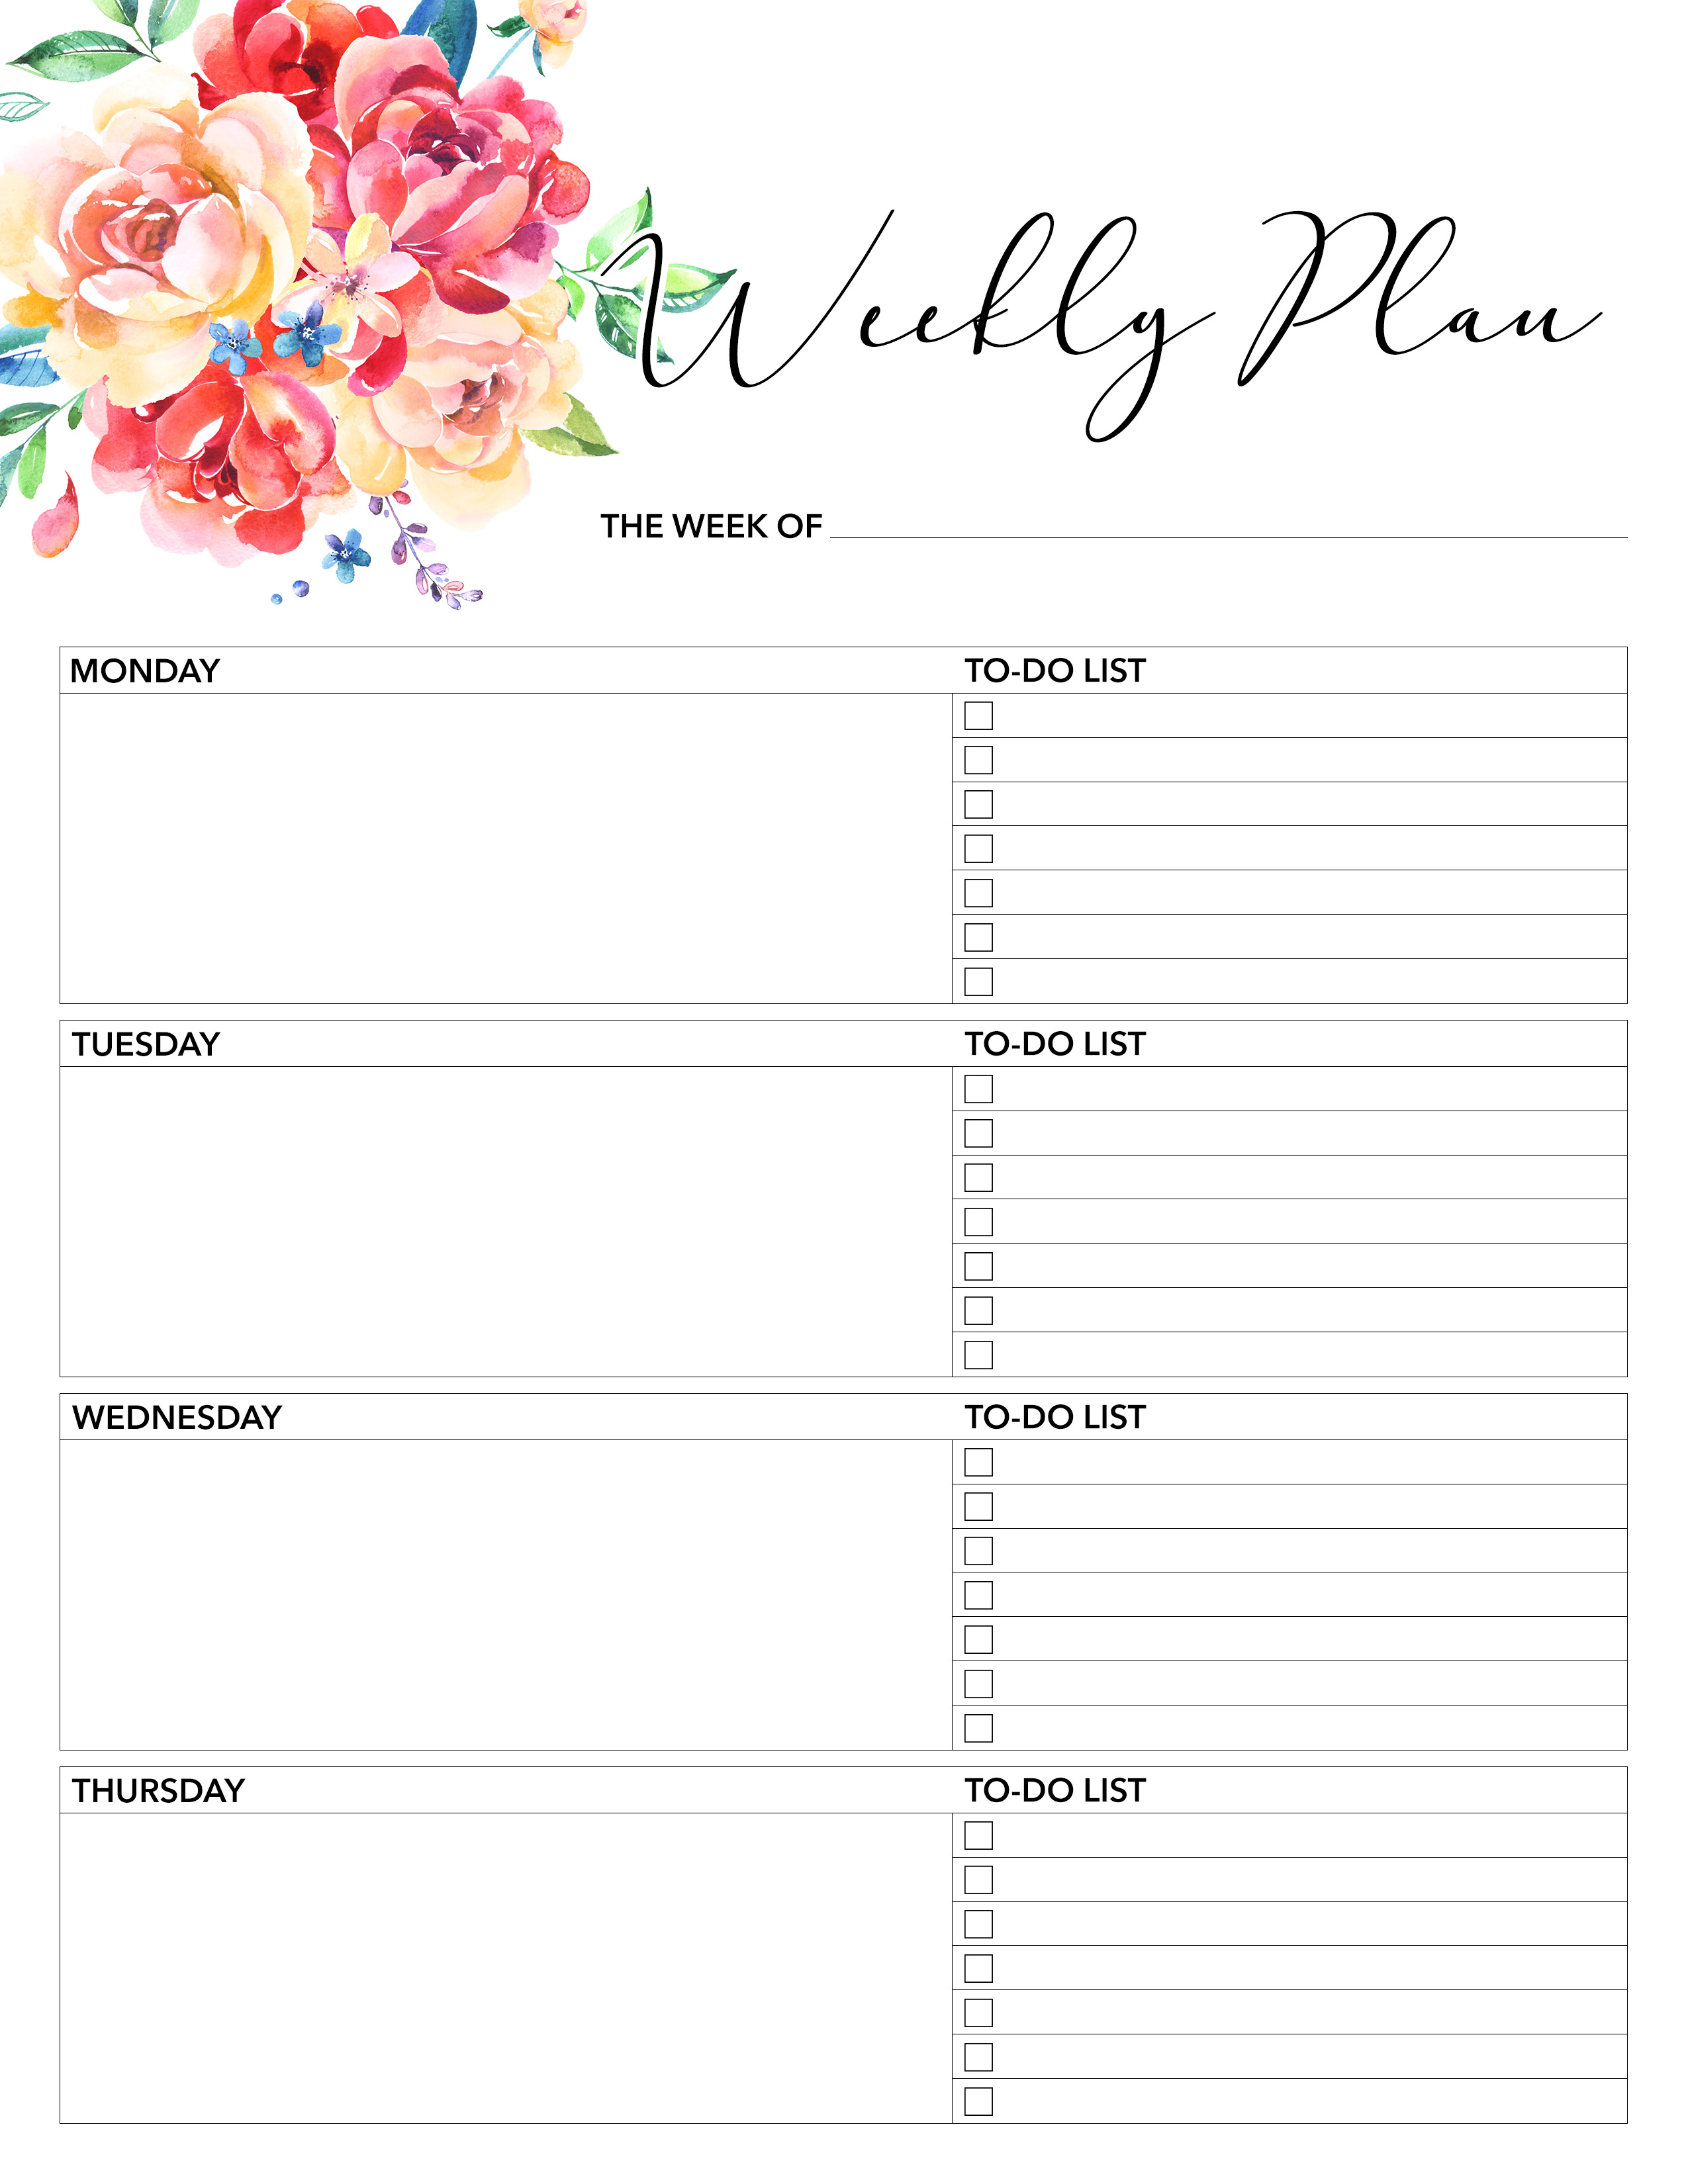 Printable Daily Planner 2018 | room surf.com